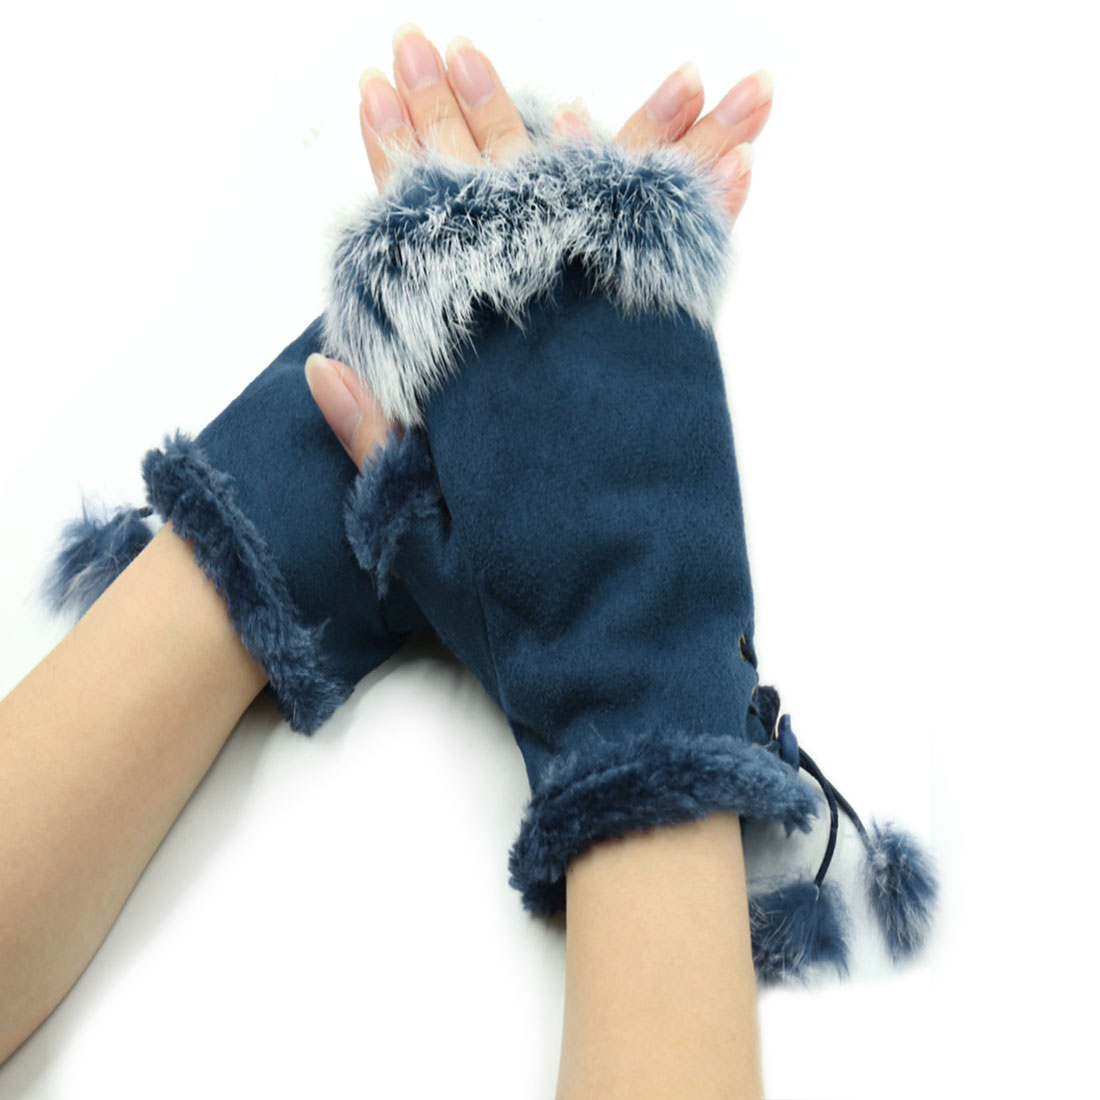 Unique Bargains Women's Plush Trim Soft Lined Lace Up Design Fingerless Gloves Blue